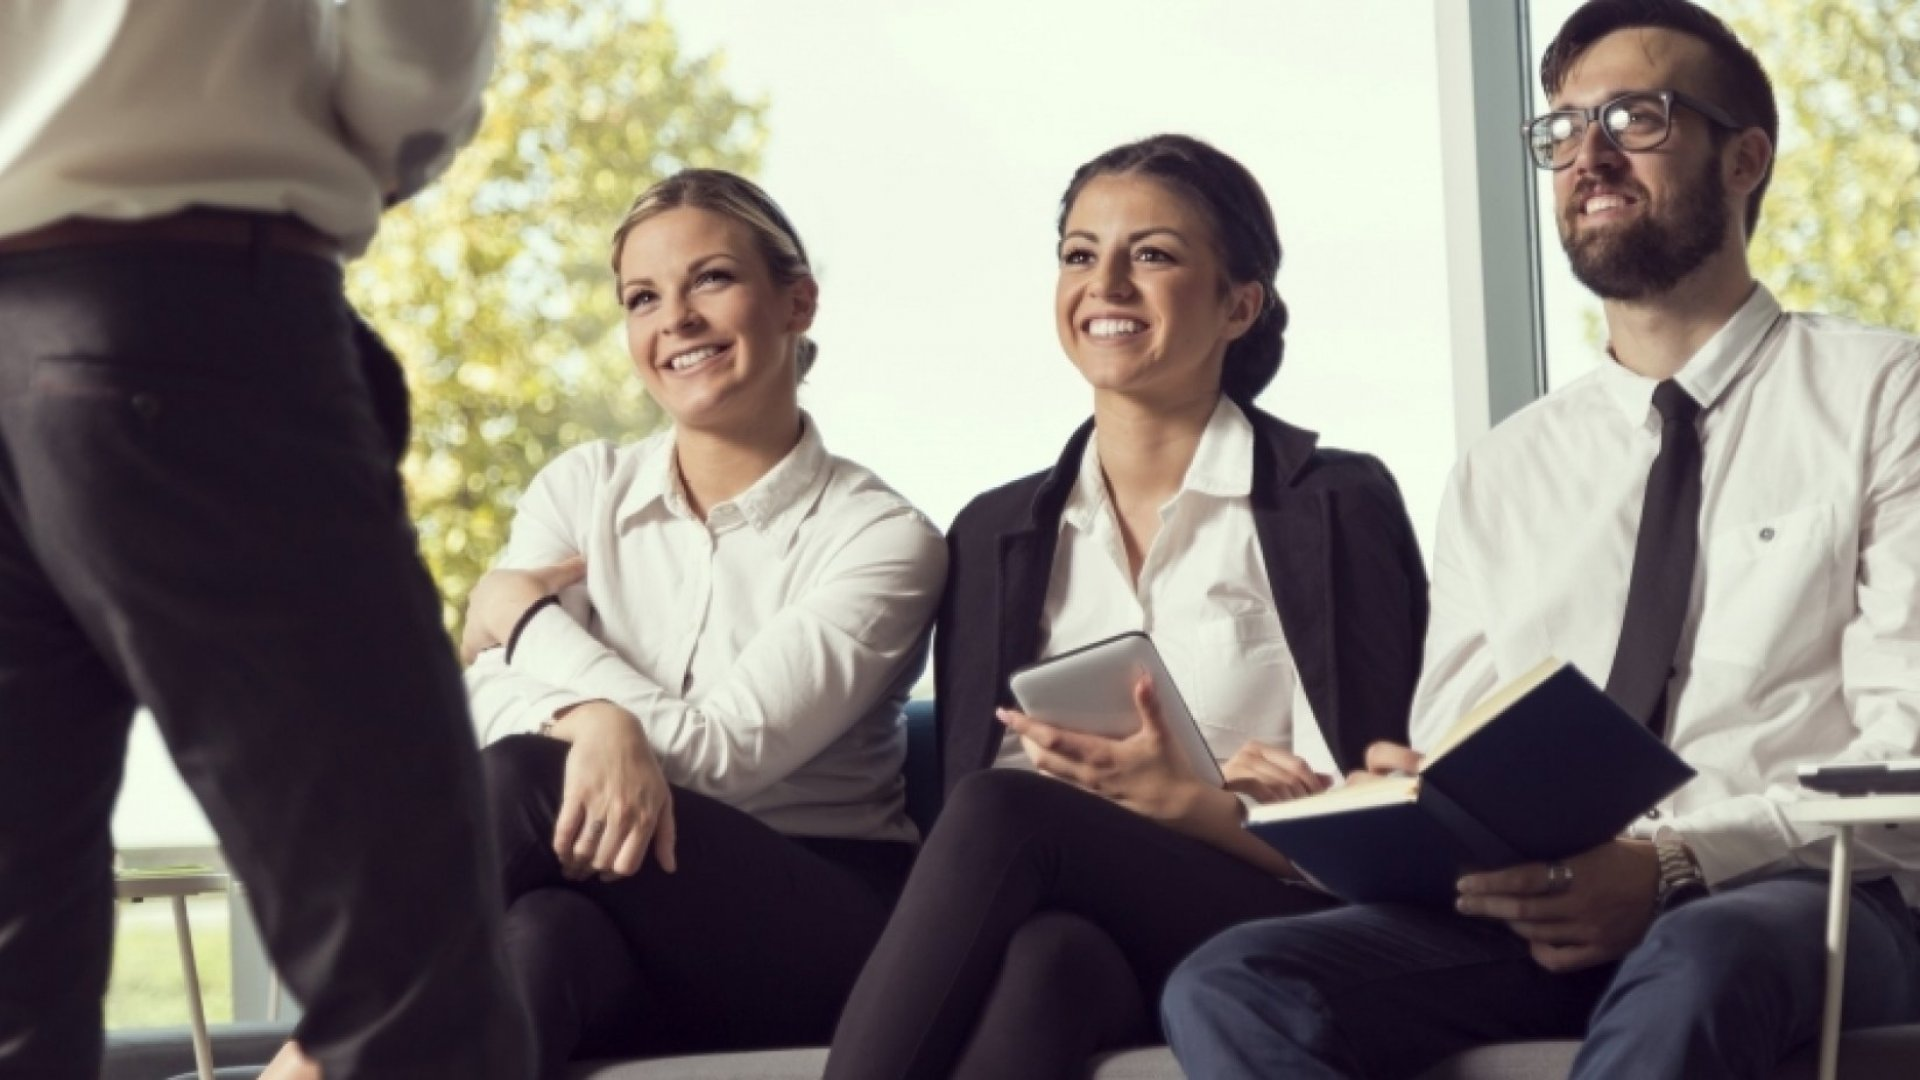 Don't Ruin Your New Hire!  10 Tips to Onboard a New Hire the Right Way